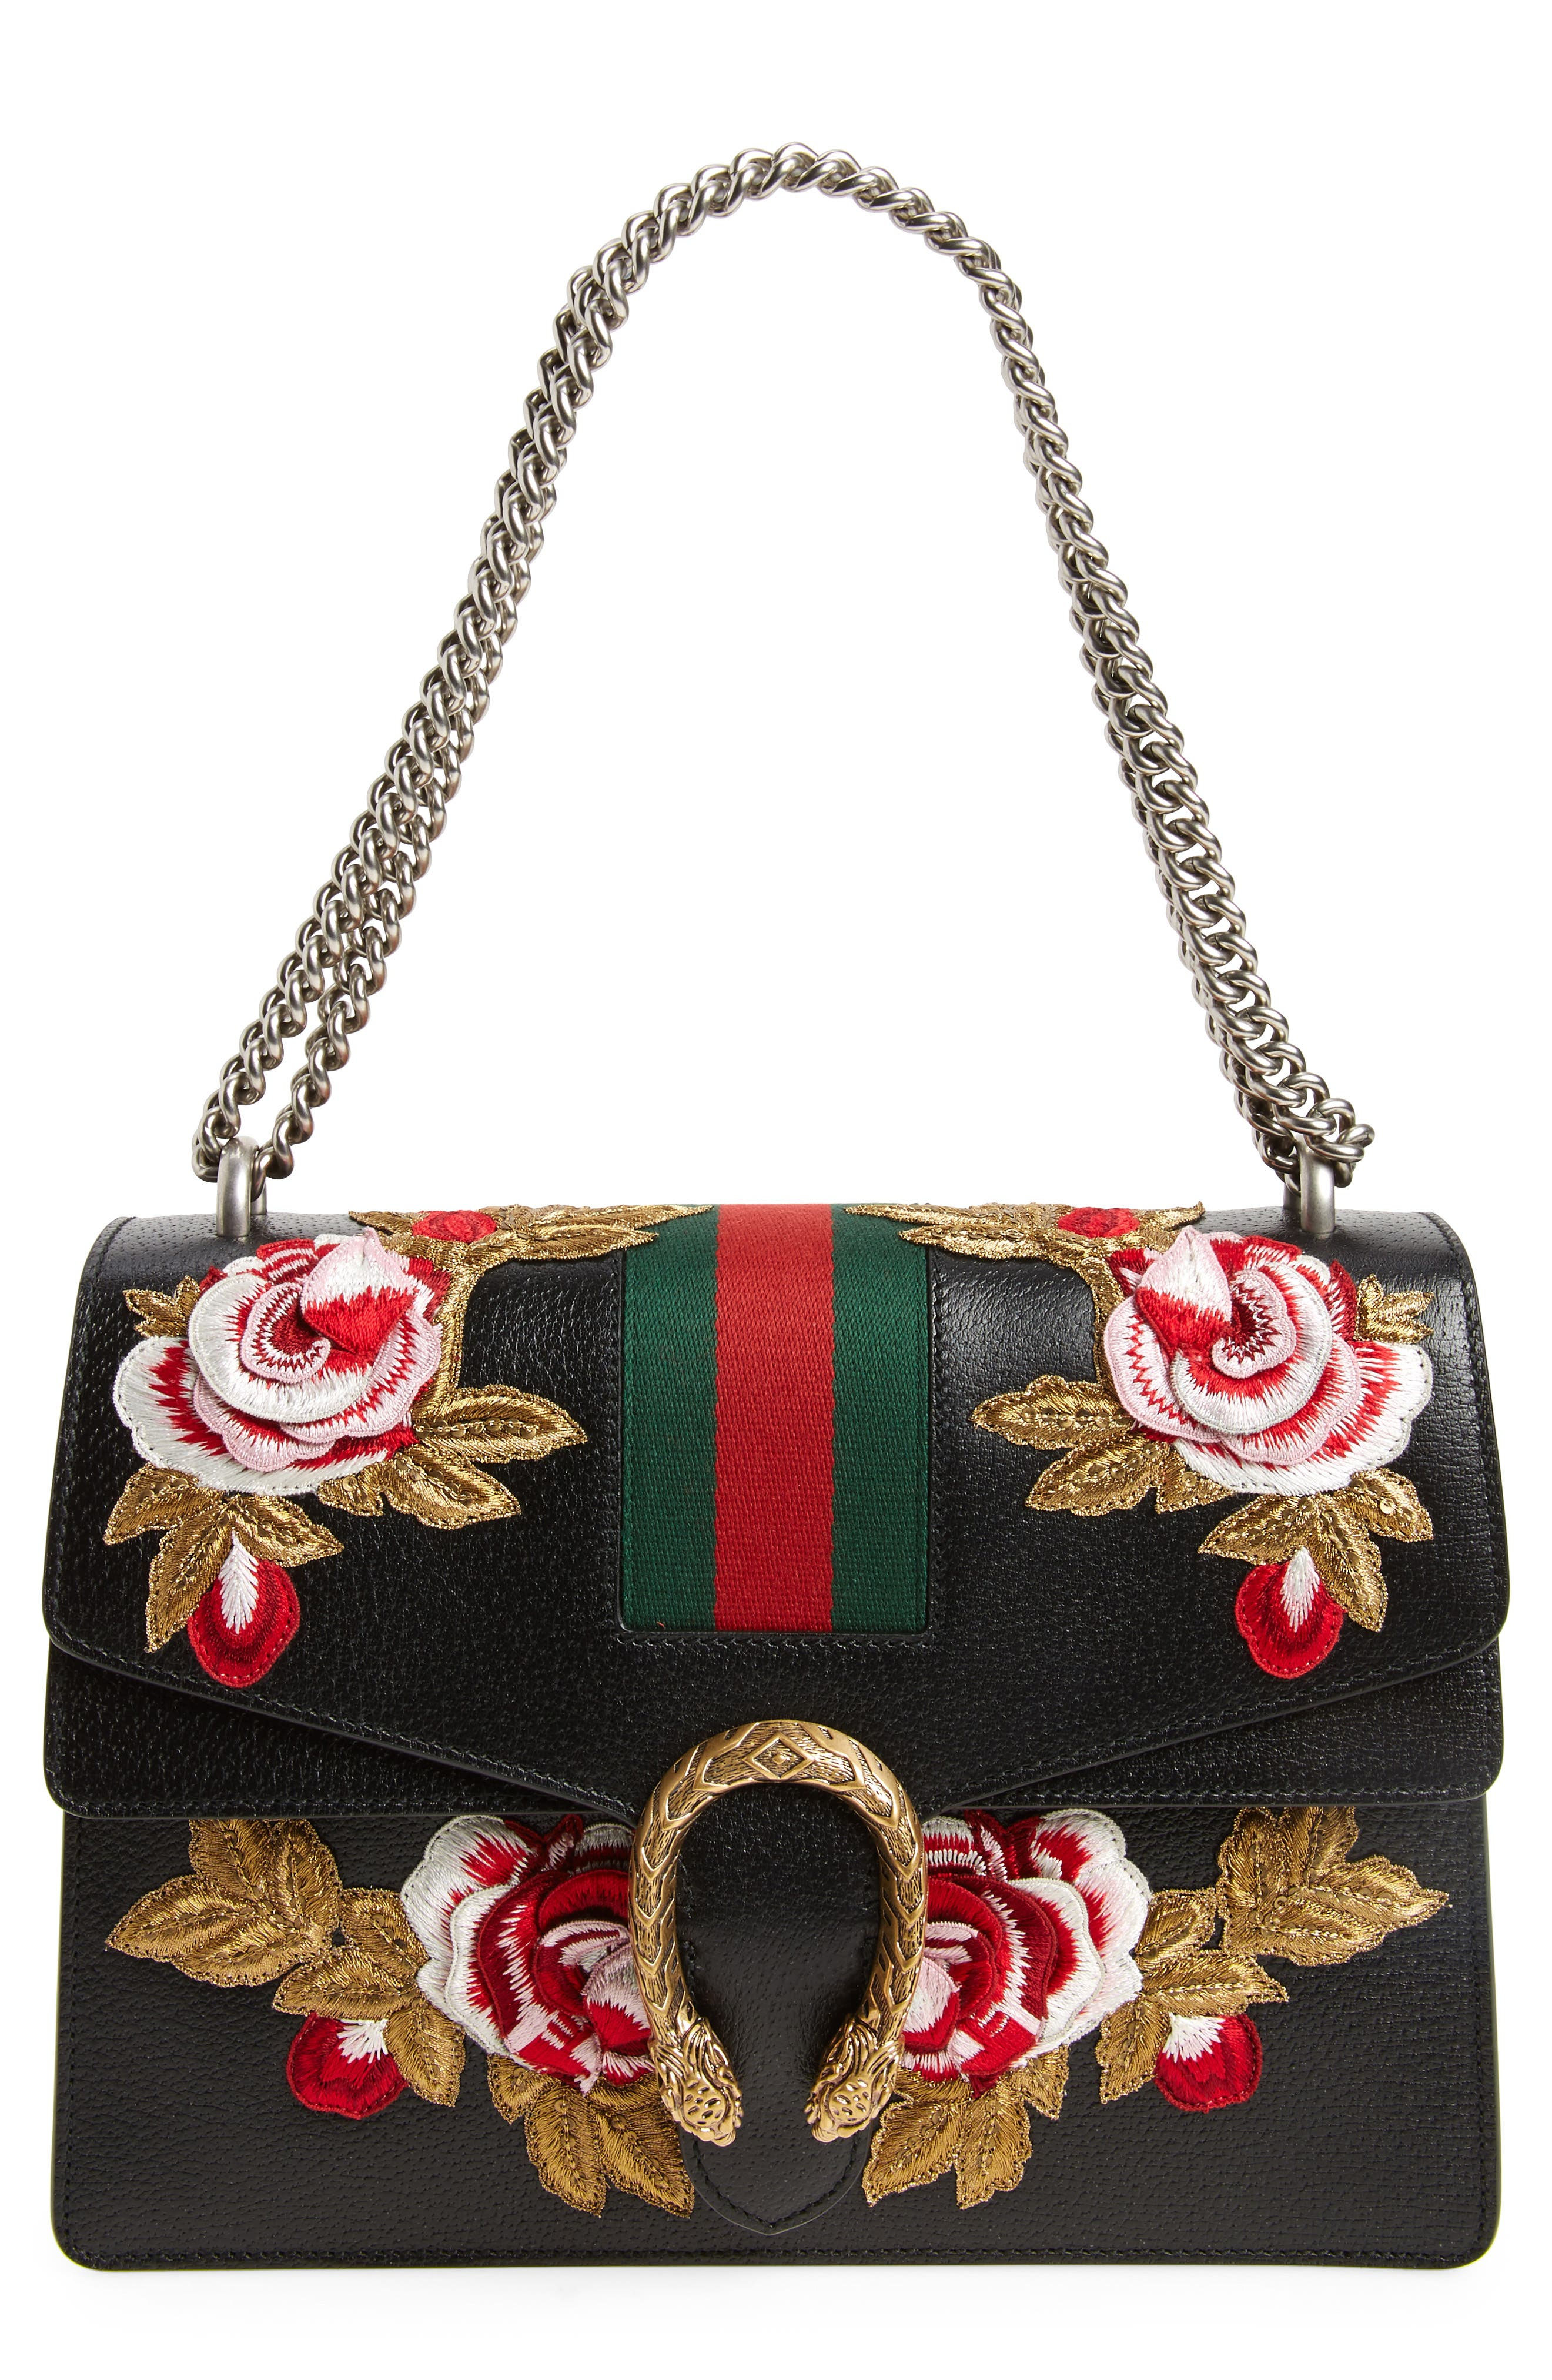 Medium Dionysus Embroidered Roses Leather Shoulder Bag,                             Main thumbnail 1, color,                             NERO/MULTI